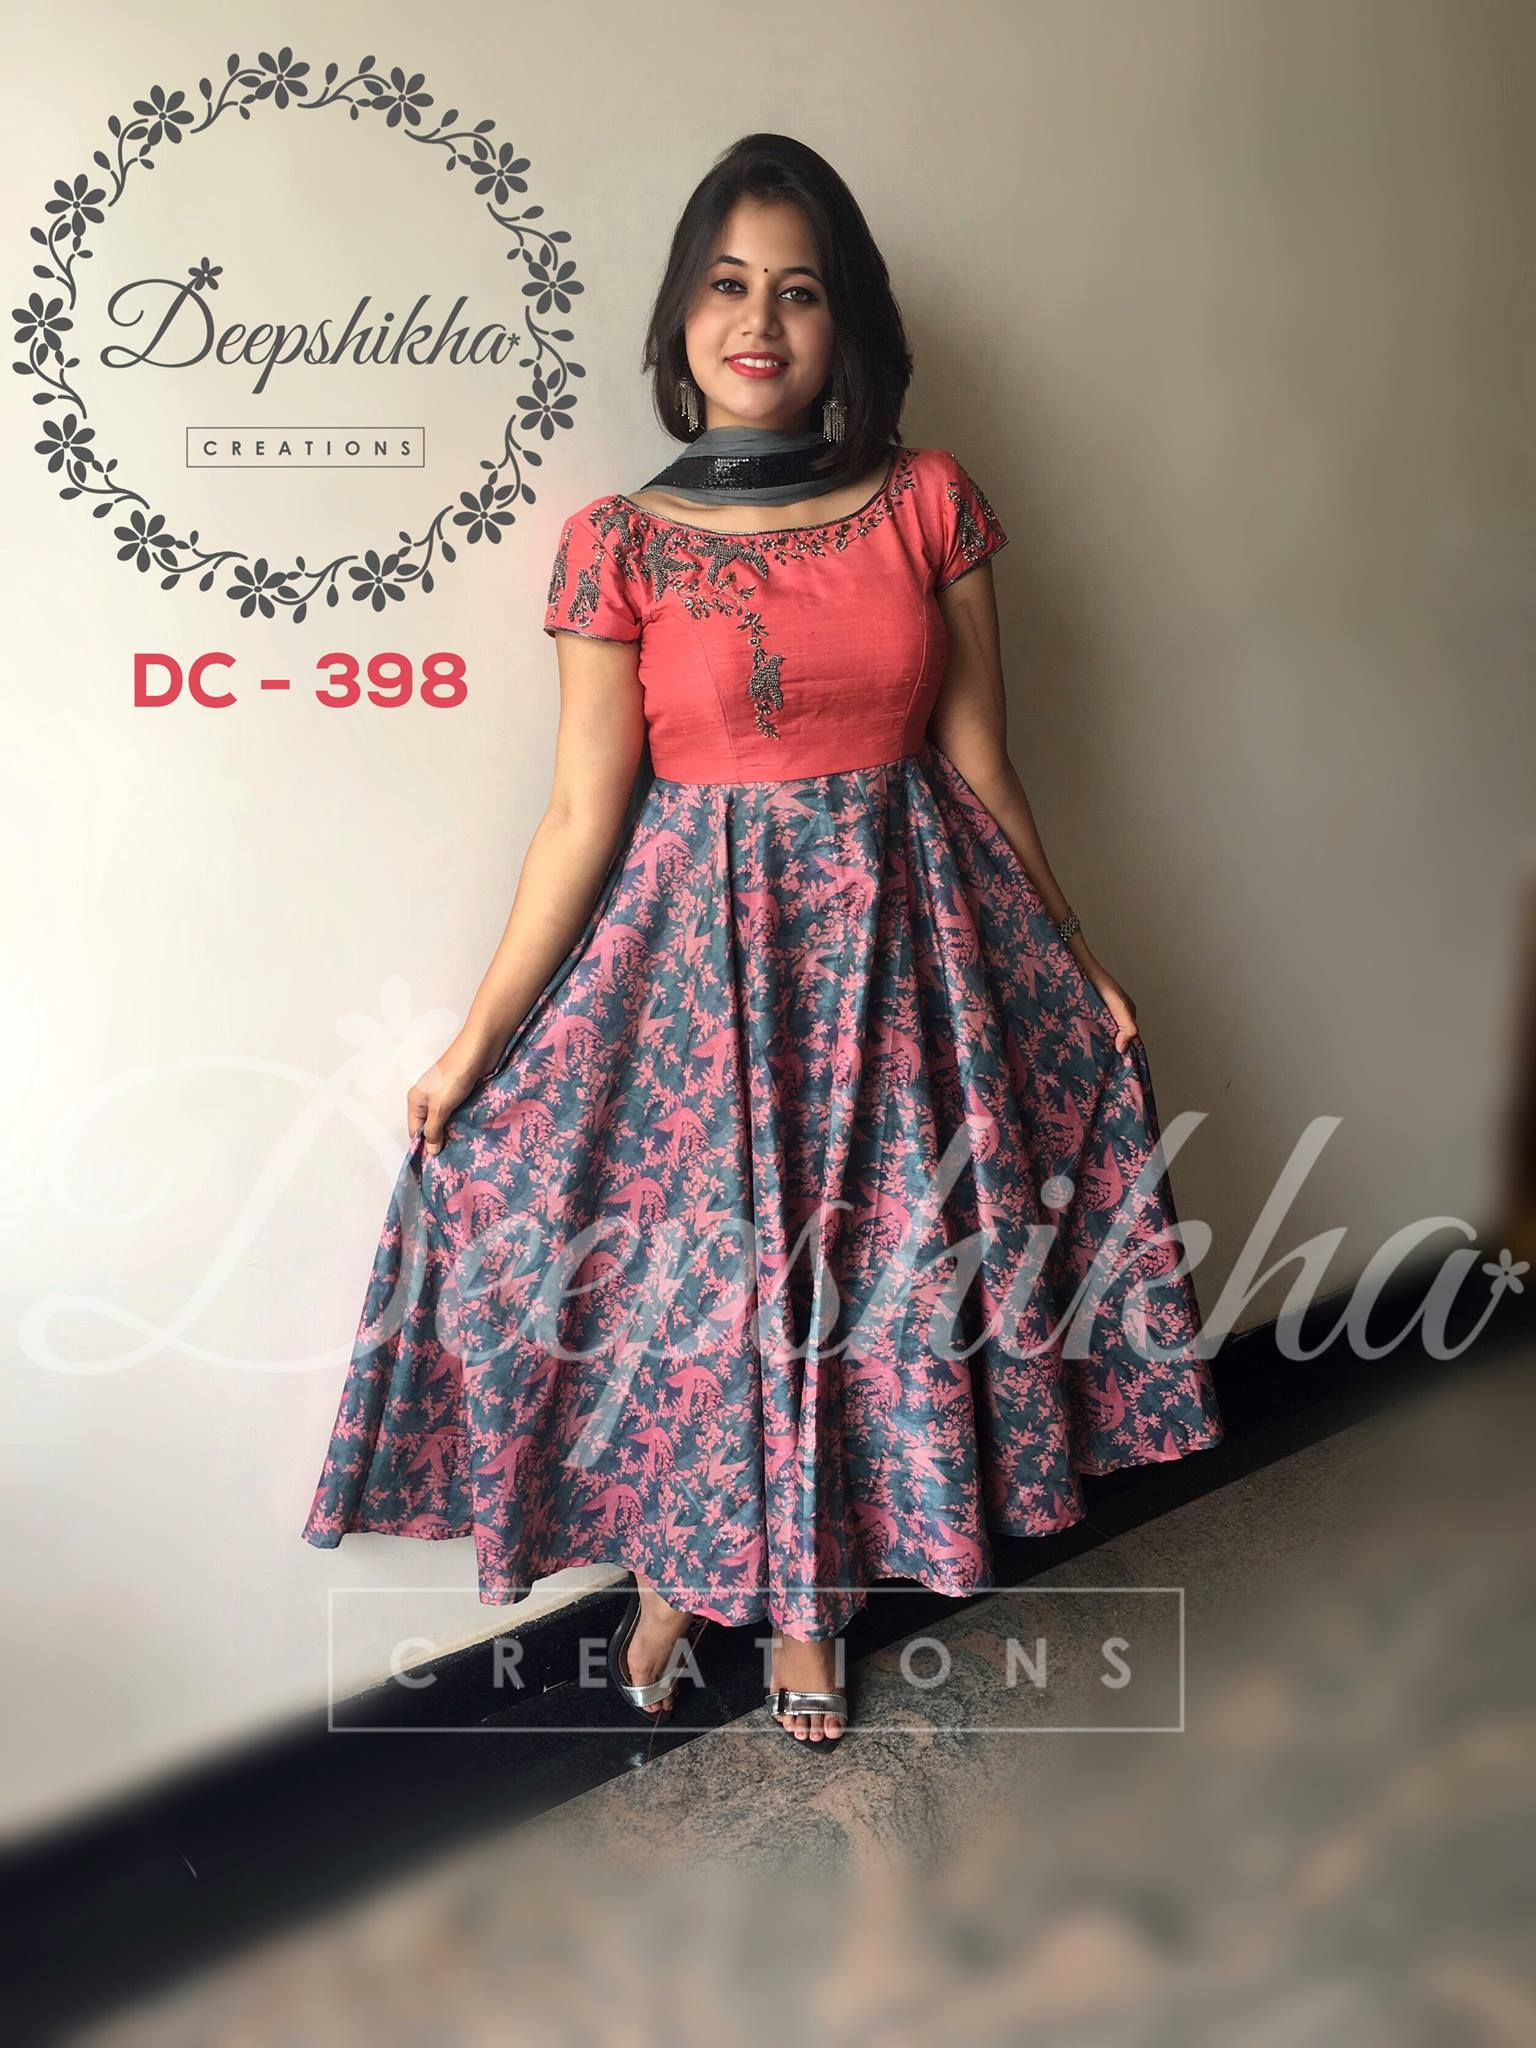 DC 398. Beautiful floor length dress with hand embroidery thread work from Deepshika.